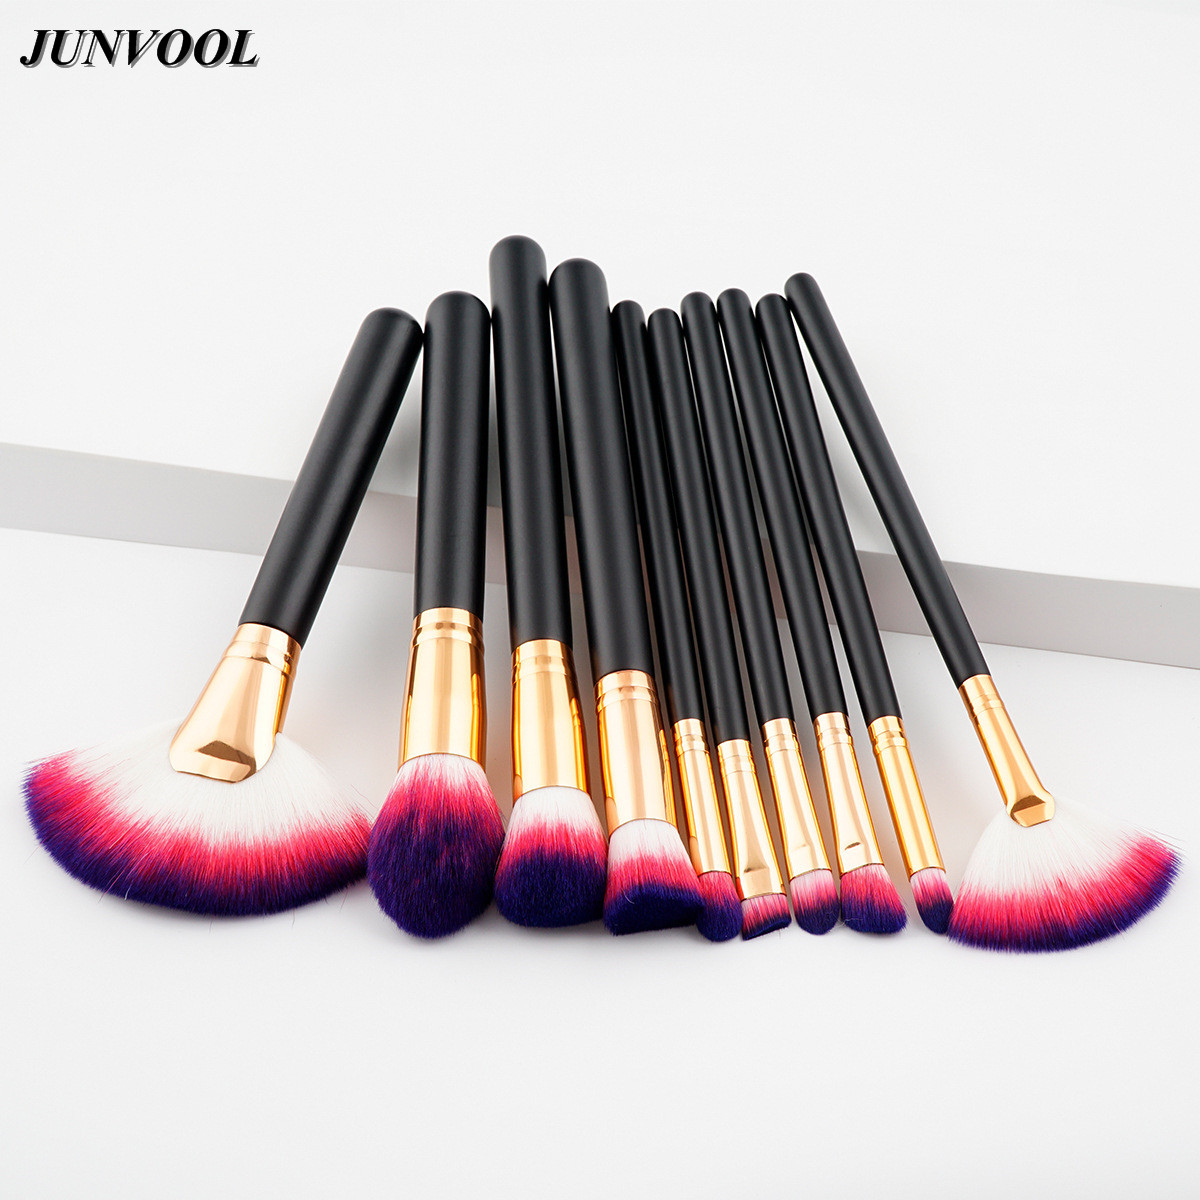 10pcs Full Professional Makeup Brushes Set High Quality Soft Synthetic Hair Cosmetic Beauty Tools Foundation Large Fan Brush Kit professional 10 pcs soft synthetic hair make up tools kit cosmetic beauty makeup foundation brush beige sets 30